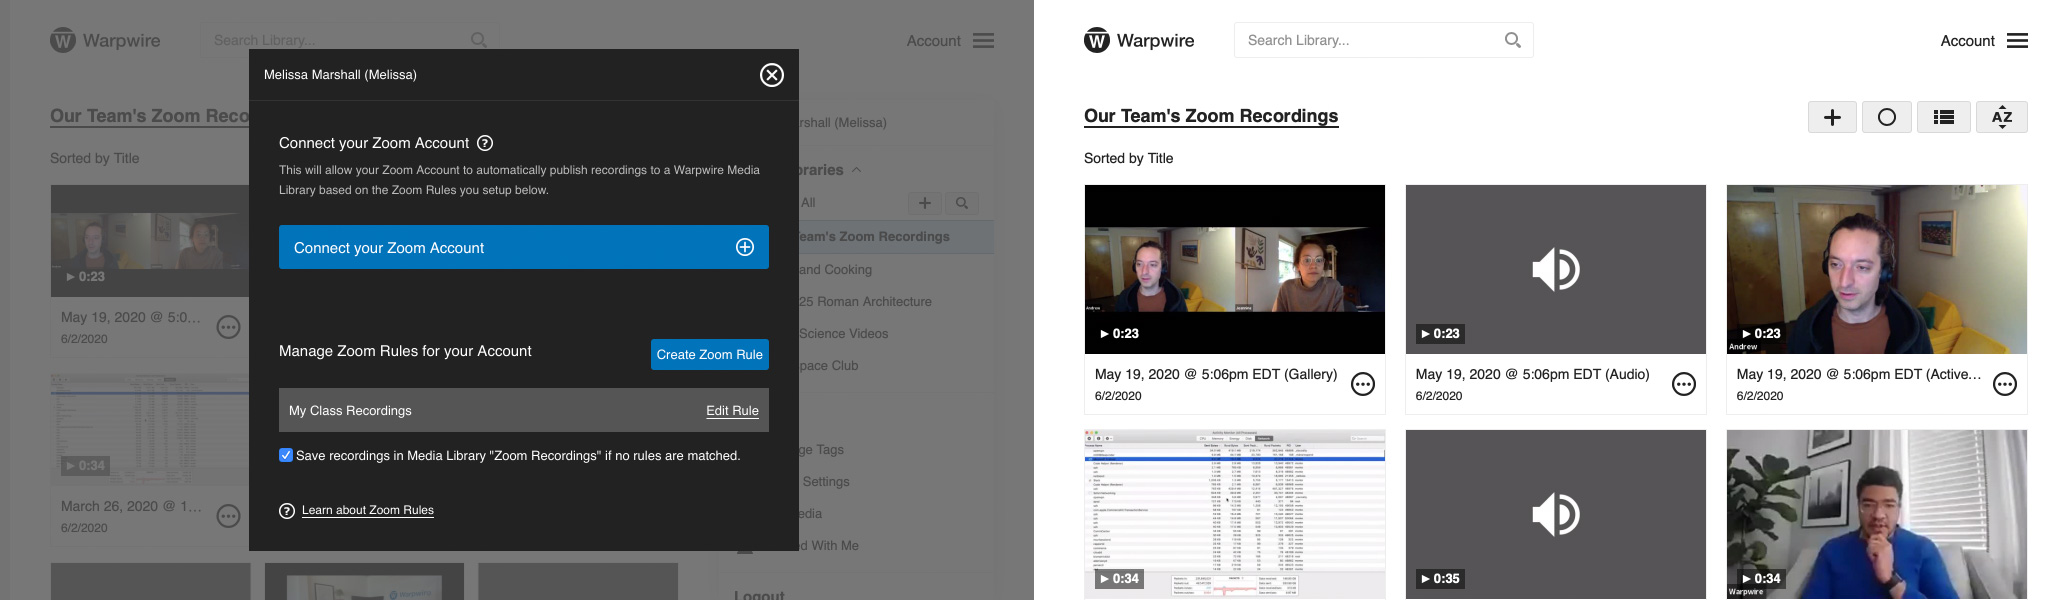 Connect your Zoom account directly to Warpwire and automatically save your Zoom recordings to Warpwire.